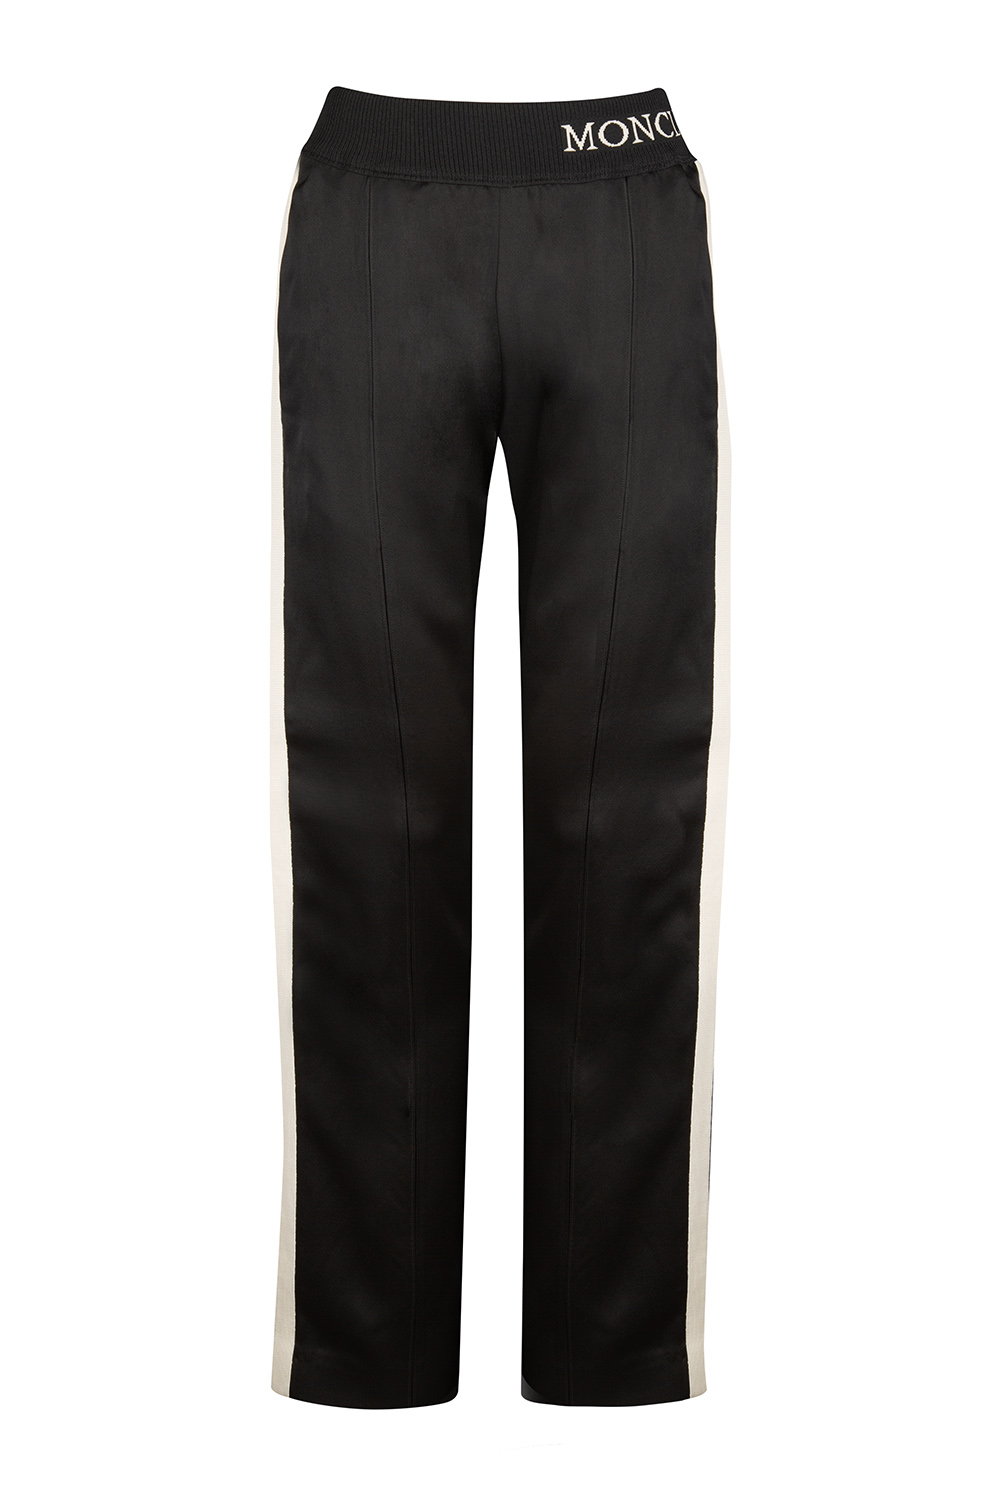 609518ff2 Moncler Women's Side Stripe Track Pants Black | Linea Fashion Linea ...